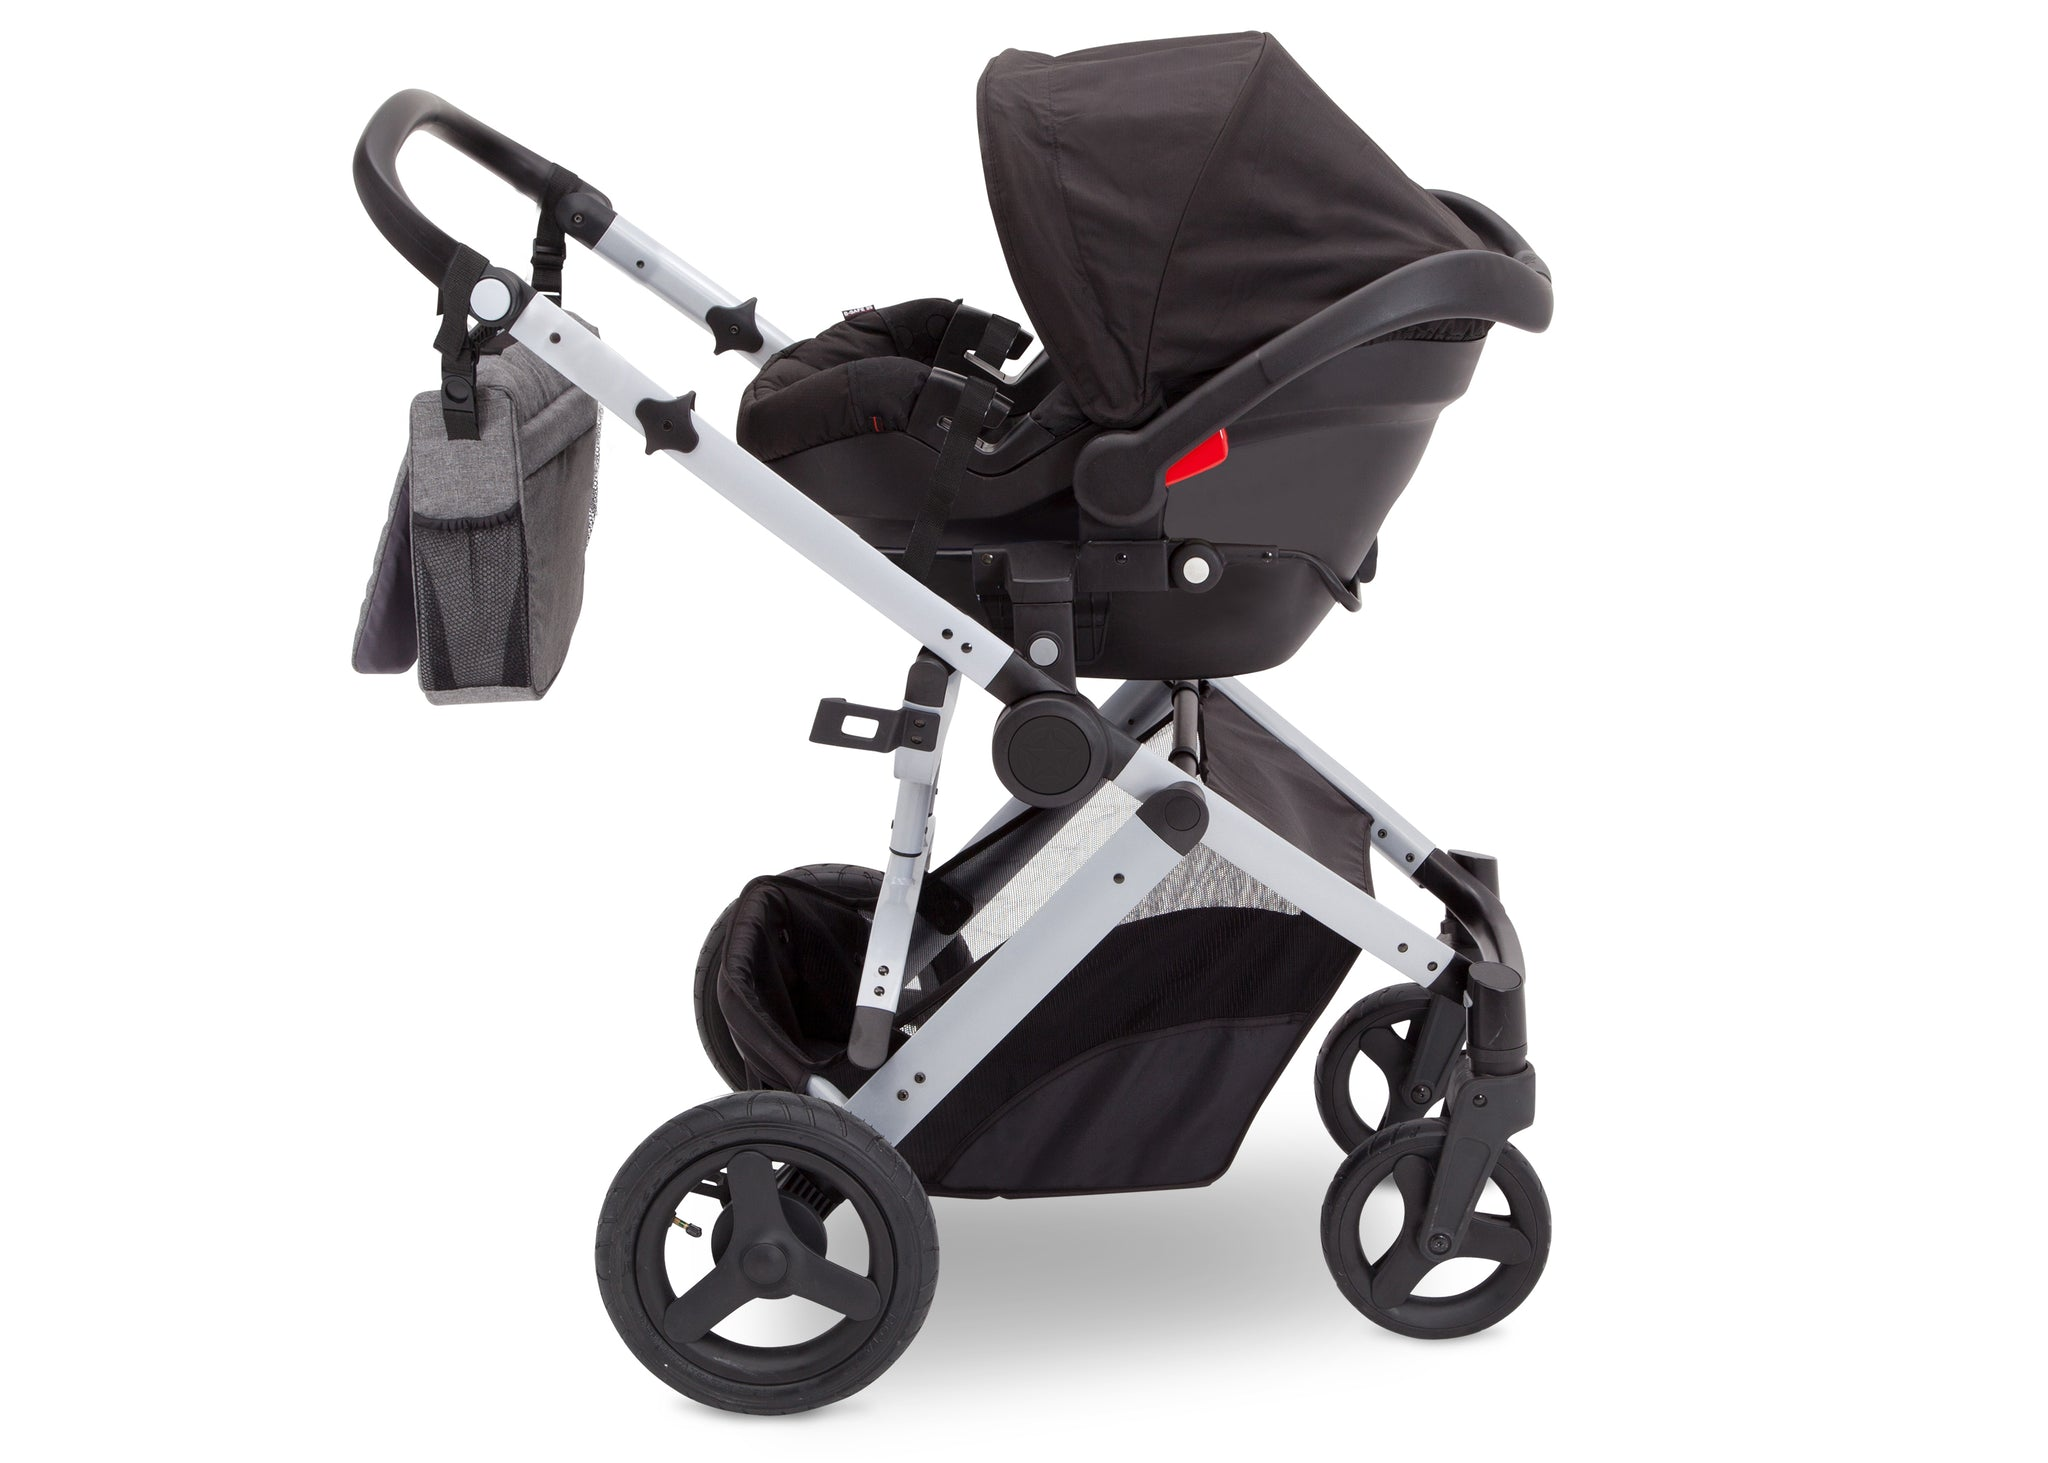 Jeep Brand Sport Utility All-Terrain Stroller by Delta Children, Grey on Silver (2400)), with car seat adapter